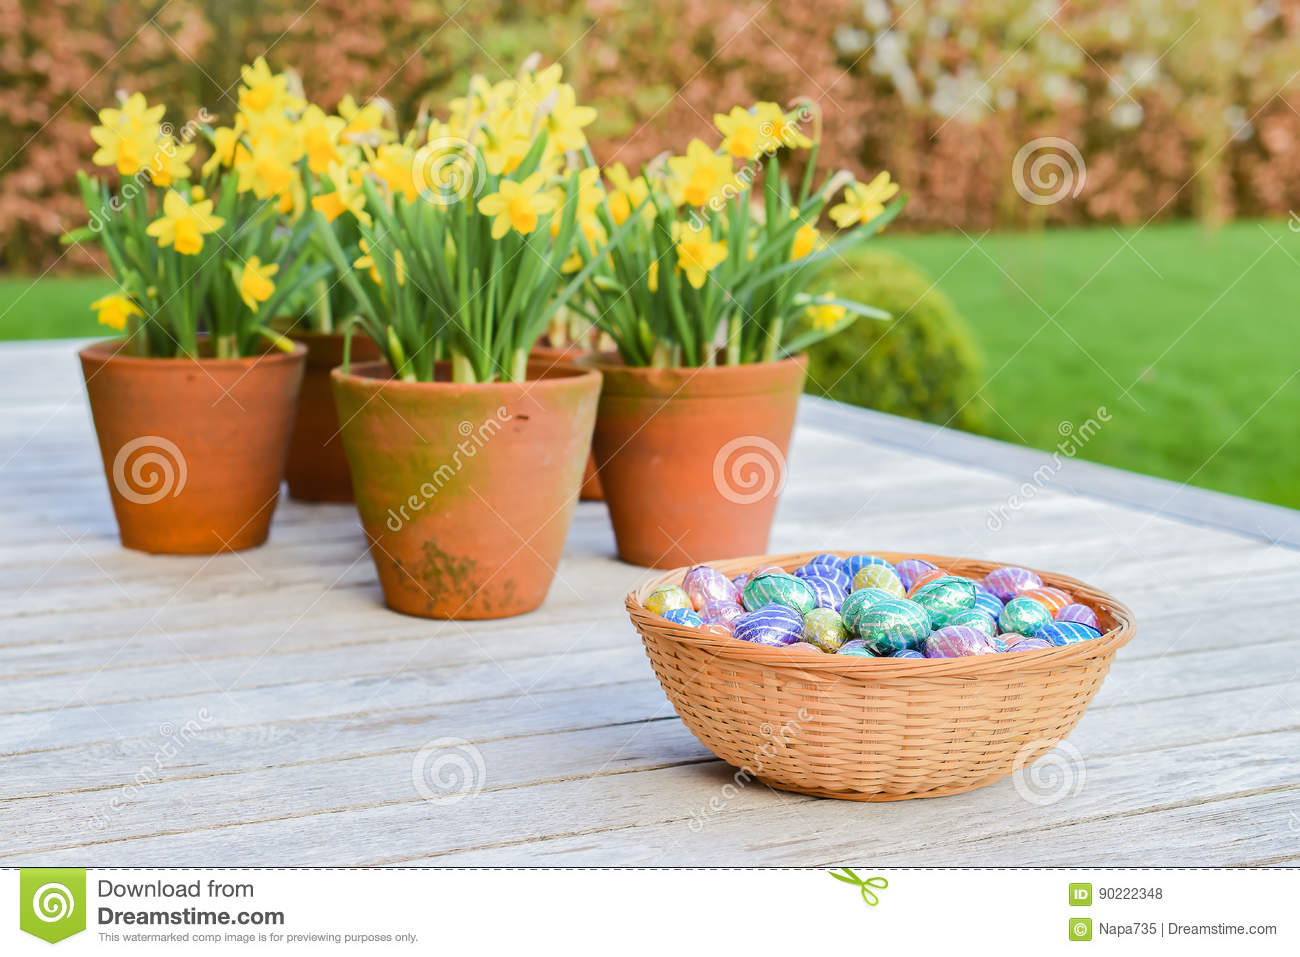 193 & Chocolate Easter Eggs And Narcissus Stock Photo - Image of daffodils ...